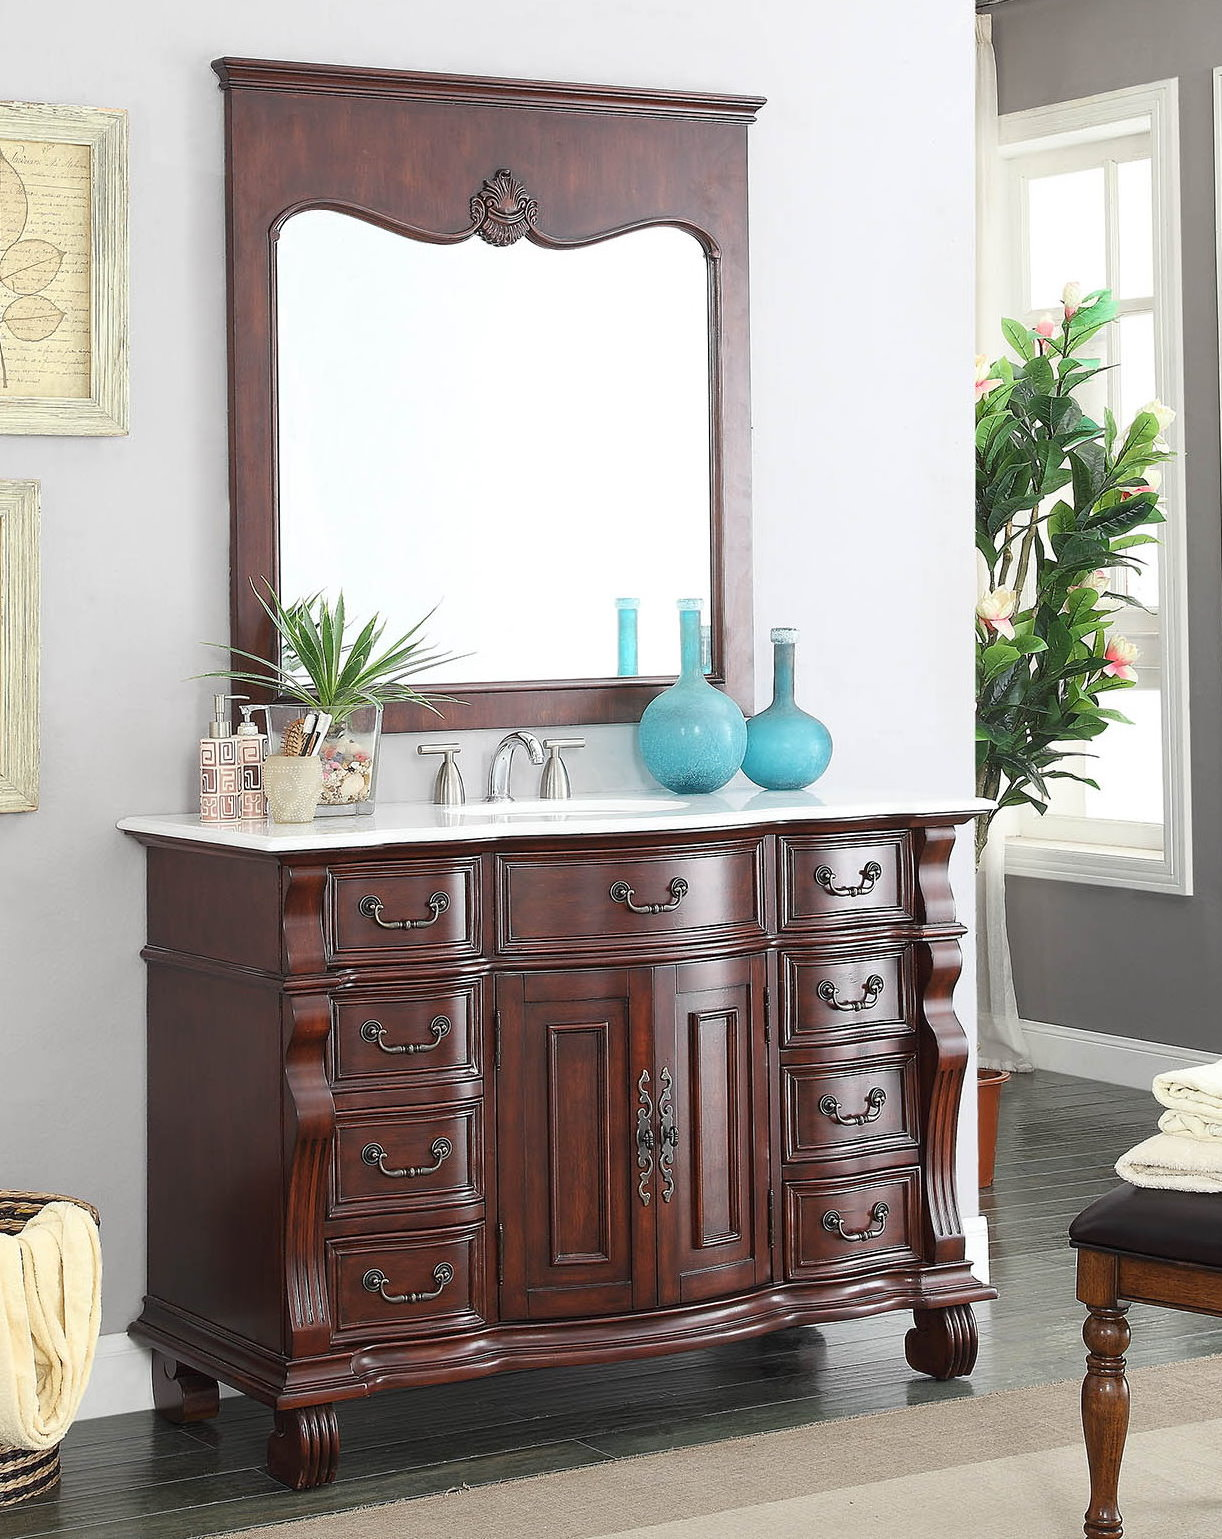 Adelina 50 inch Antique Bathroom Vanity Brown Finish White Marble Top